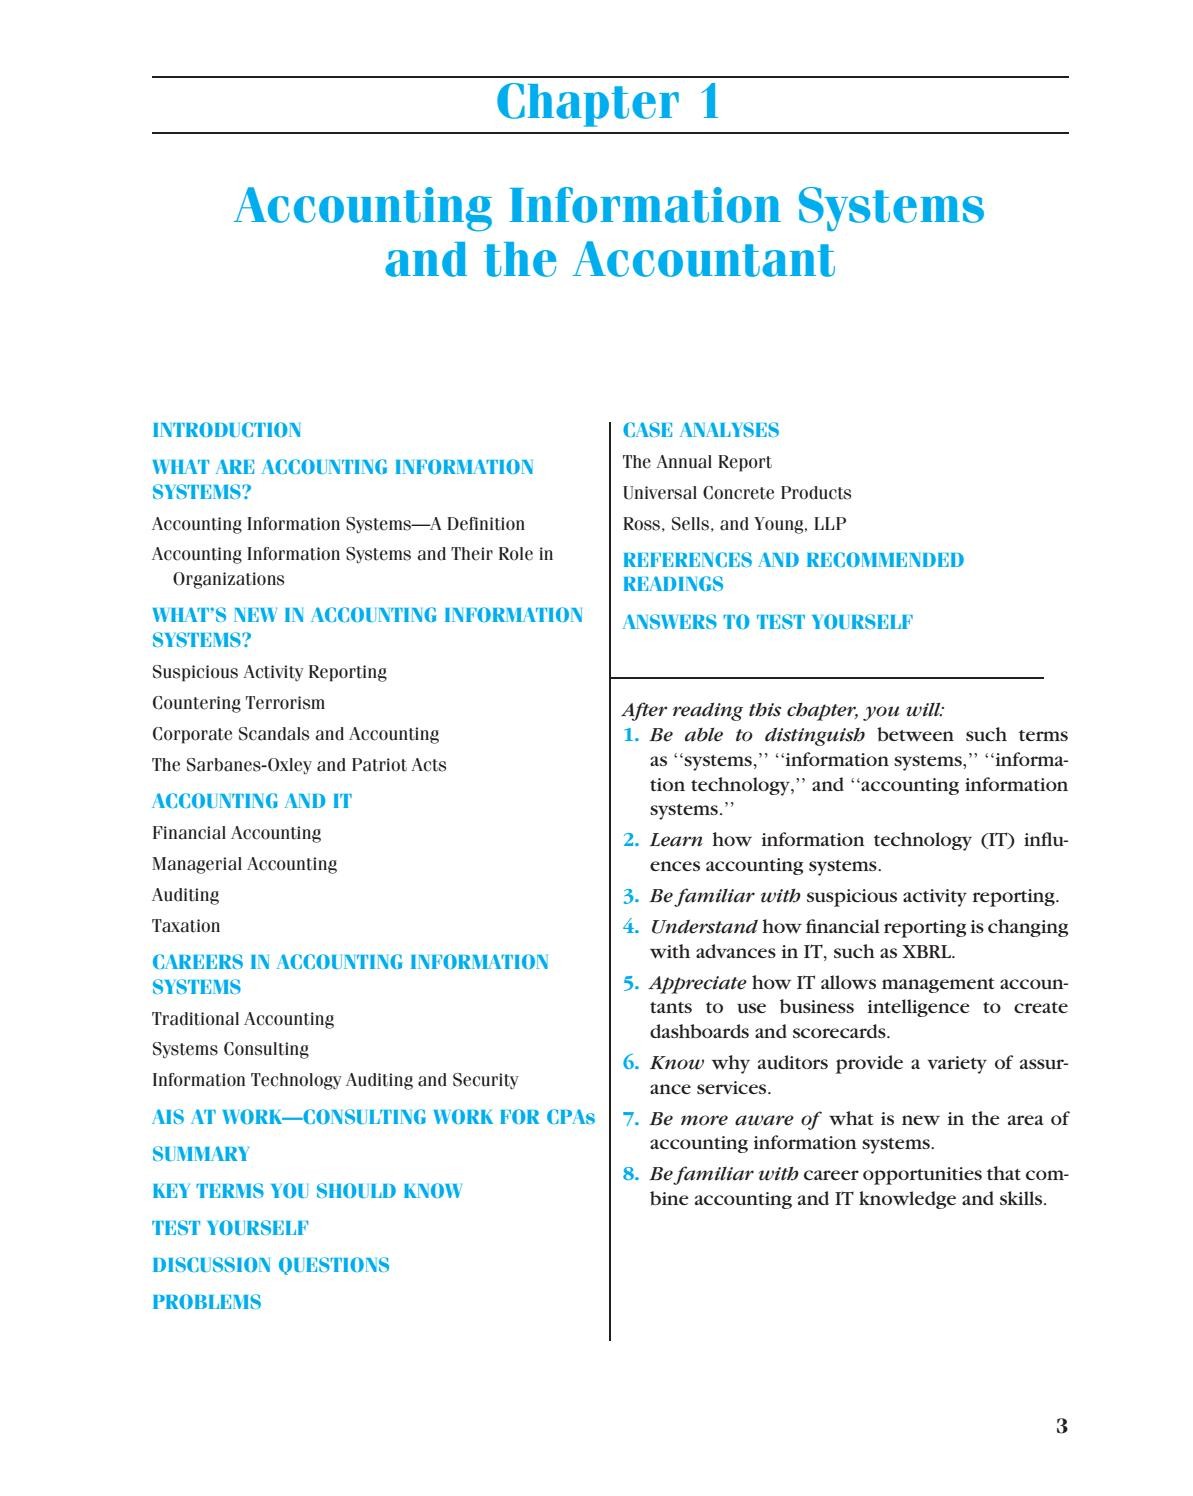 chapter 1 accounting information systems and 1 powerpoint to accompany chapter 8 accounting information systems learning objectives 1 describe an effective accounting information system 2 understand both computerised and manual accounting systems 3 understand how spreadsheets are used in accounting 4.